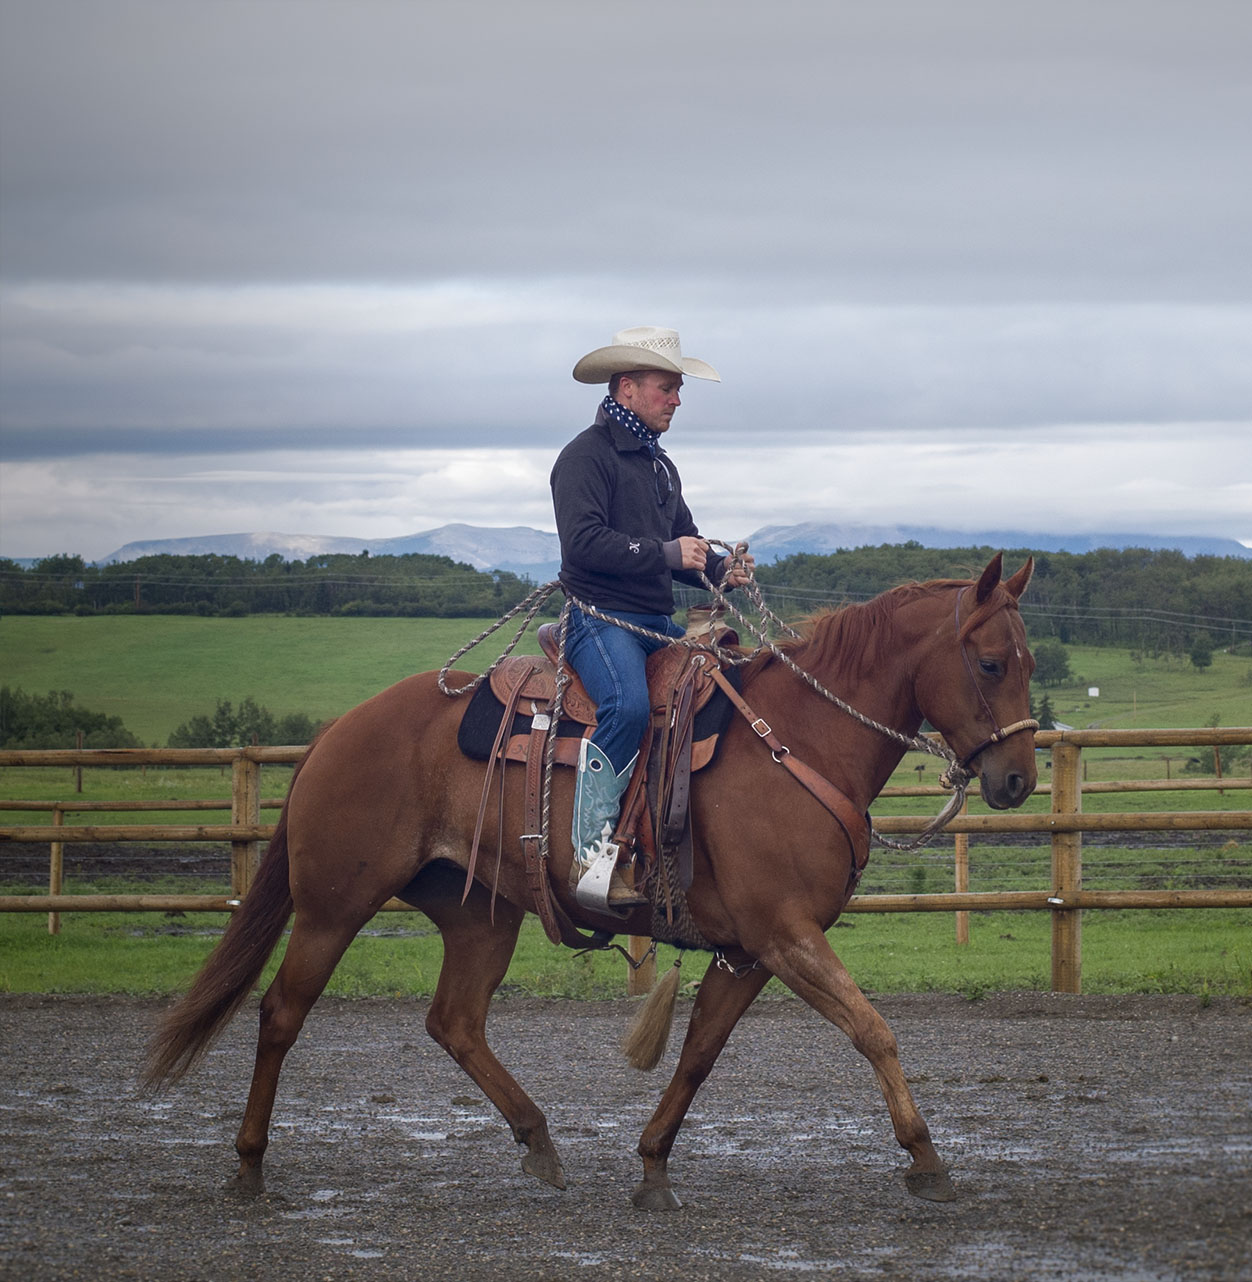 online horsemanship training courses